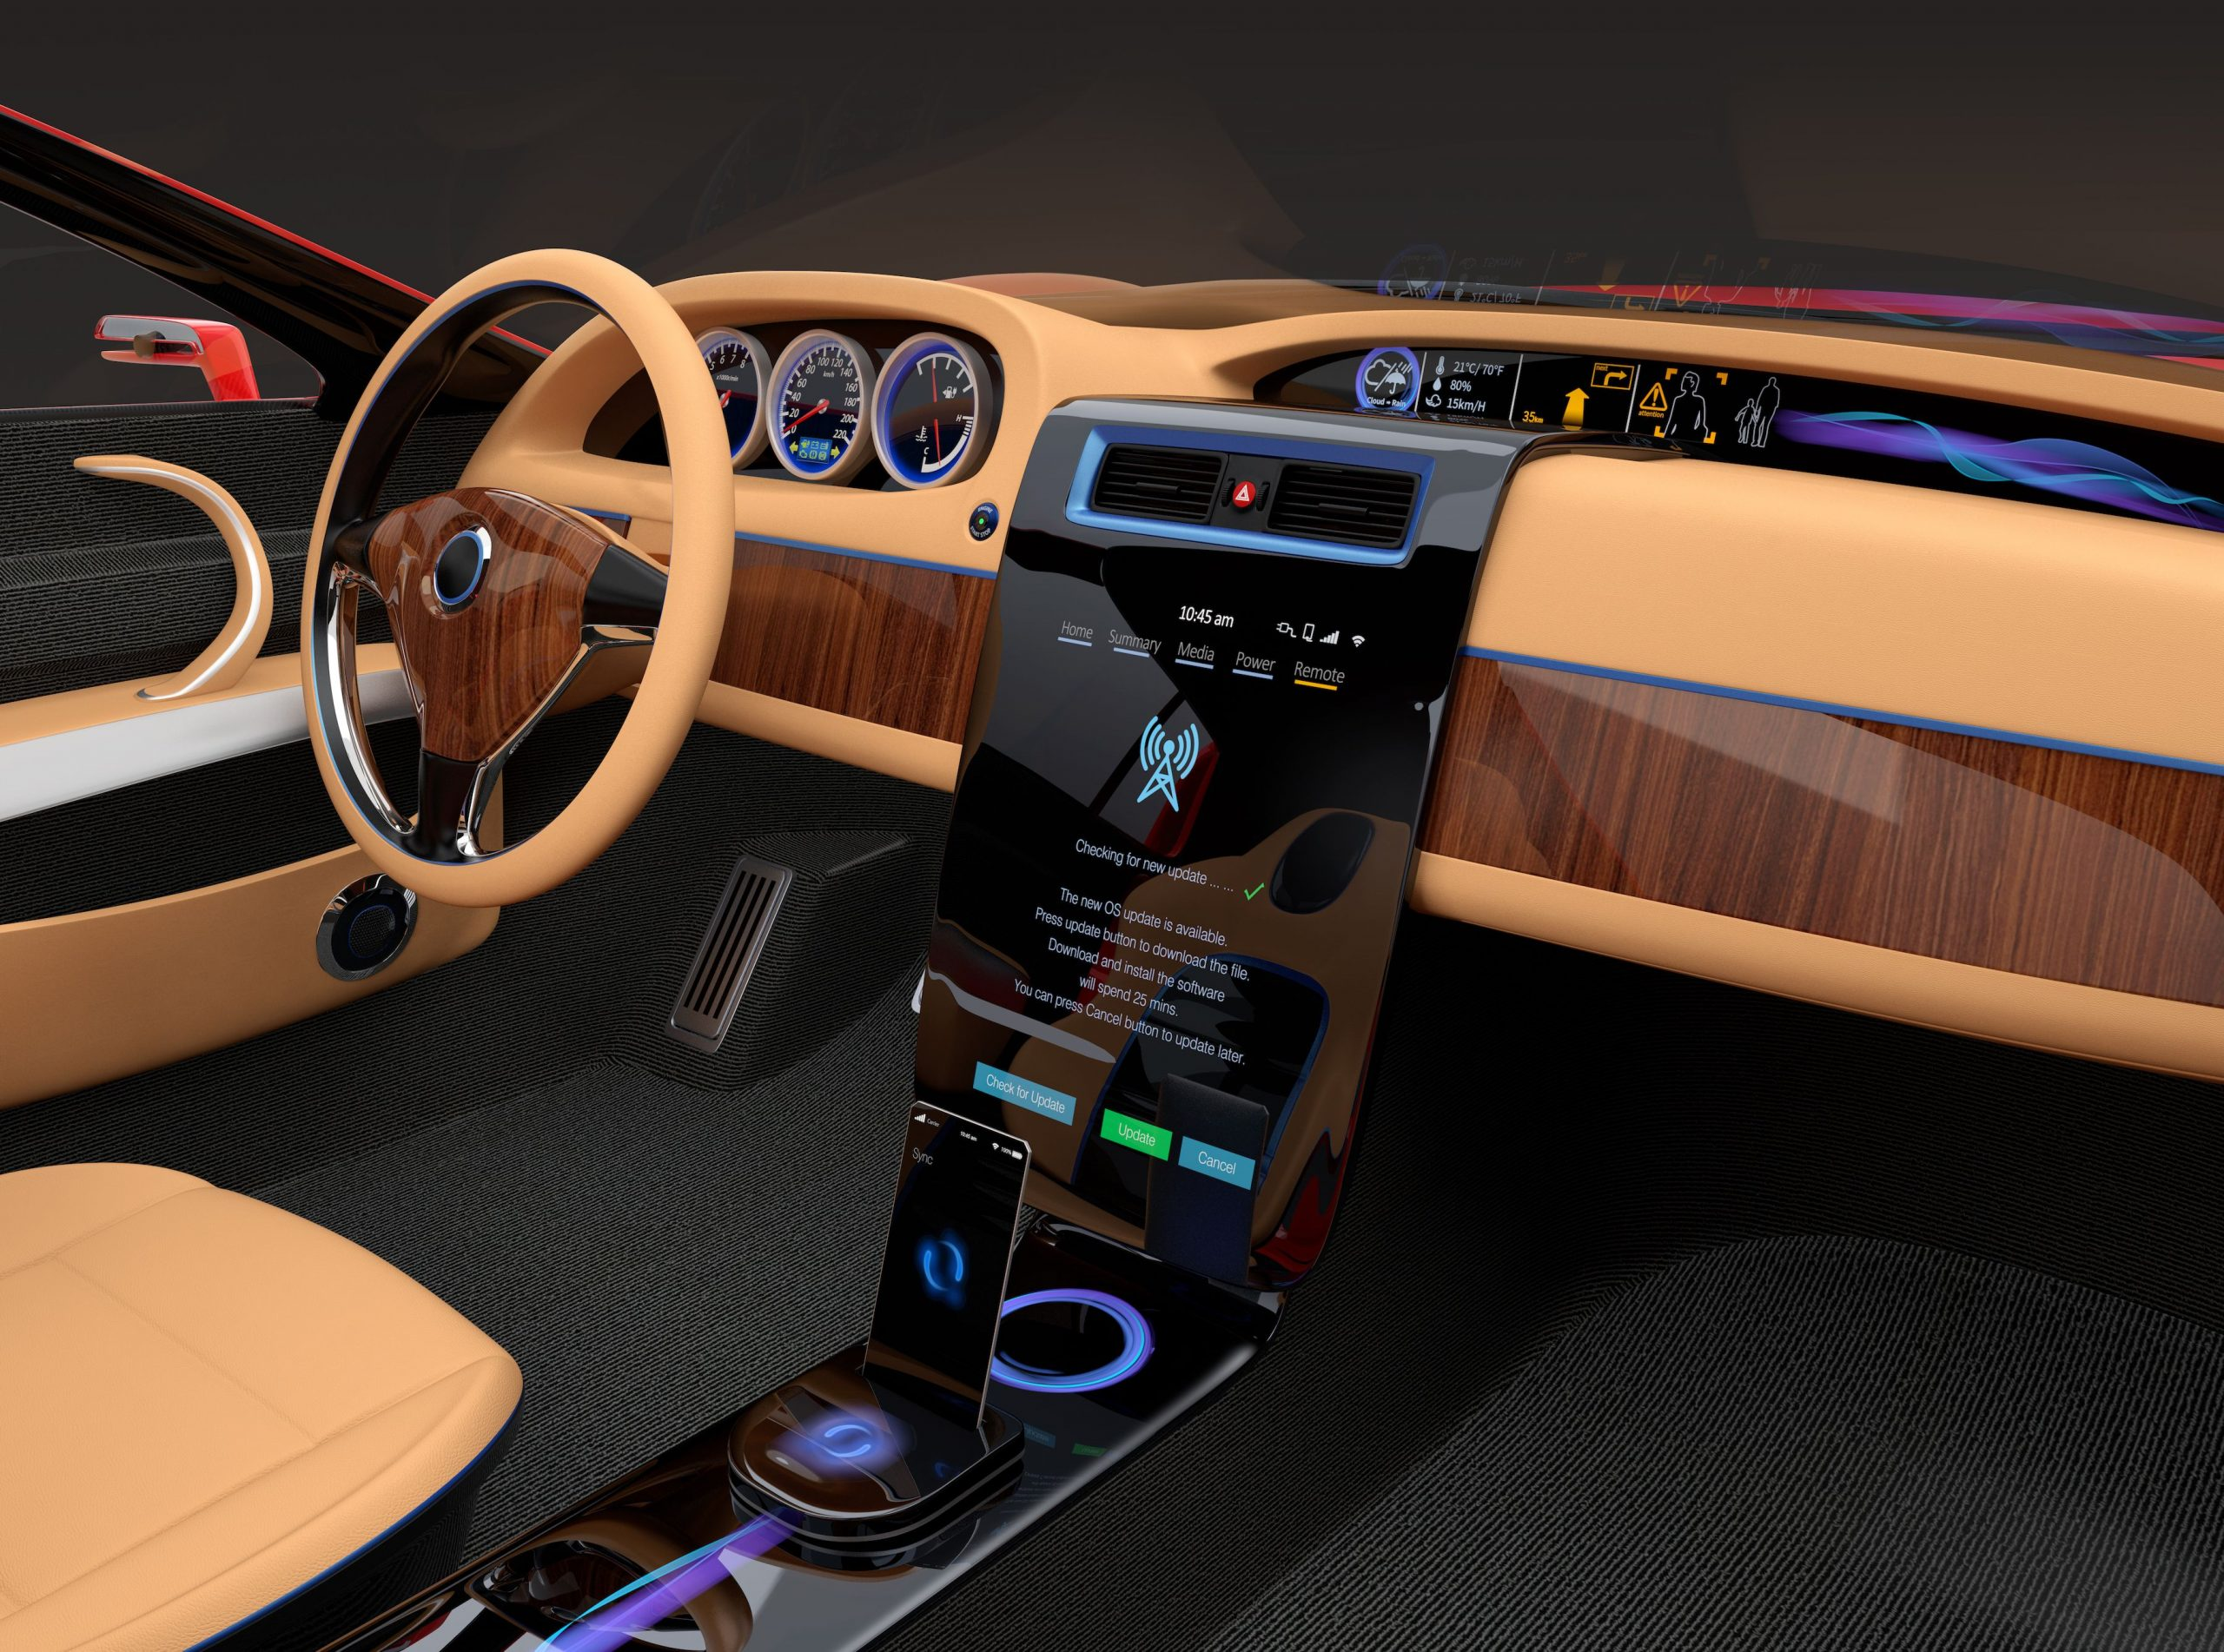 The Biggest Design Trends for the Automotive Industry 2020 - reducing interior VOC